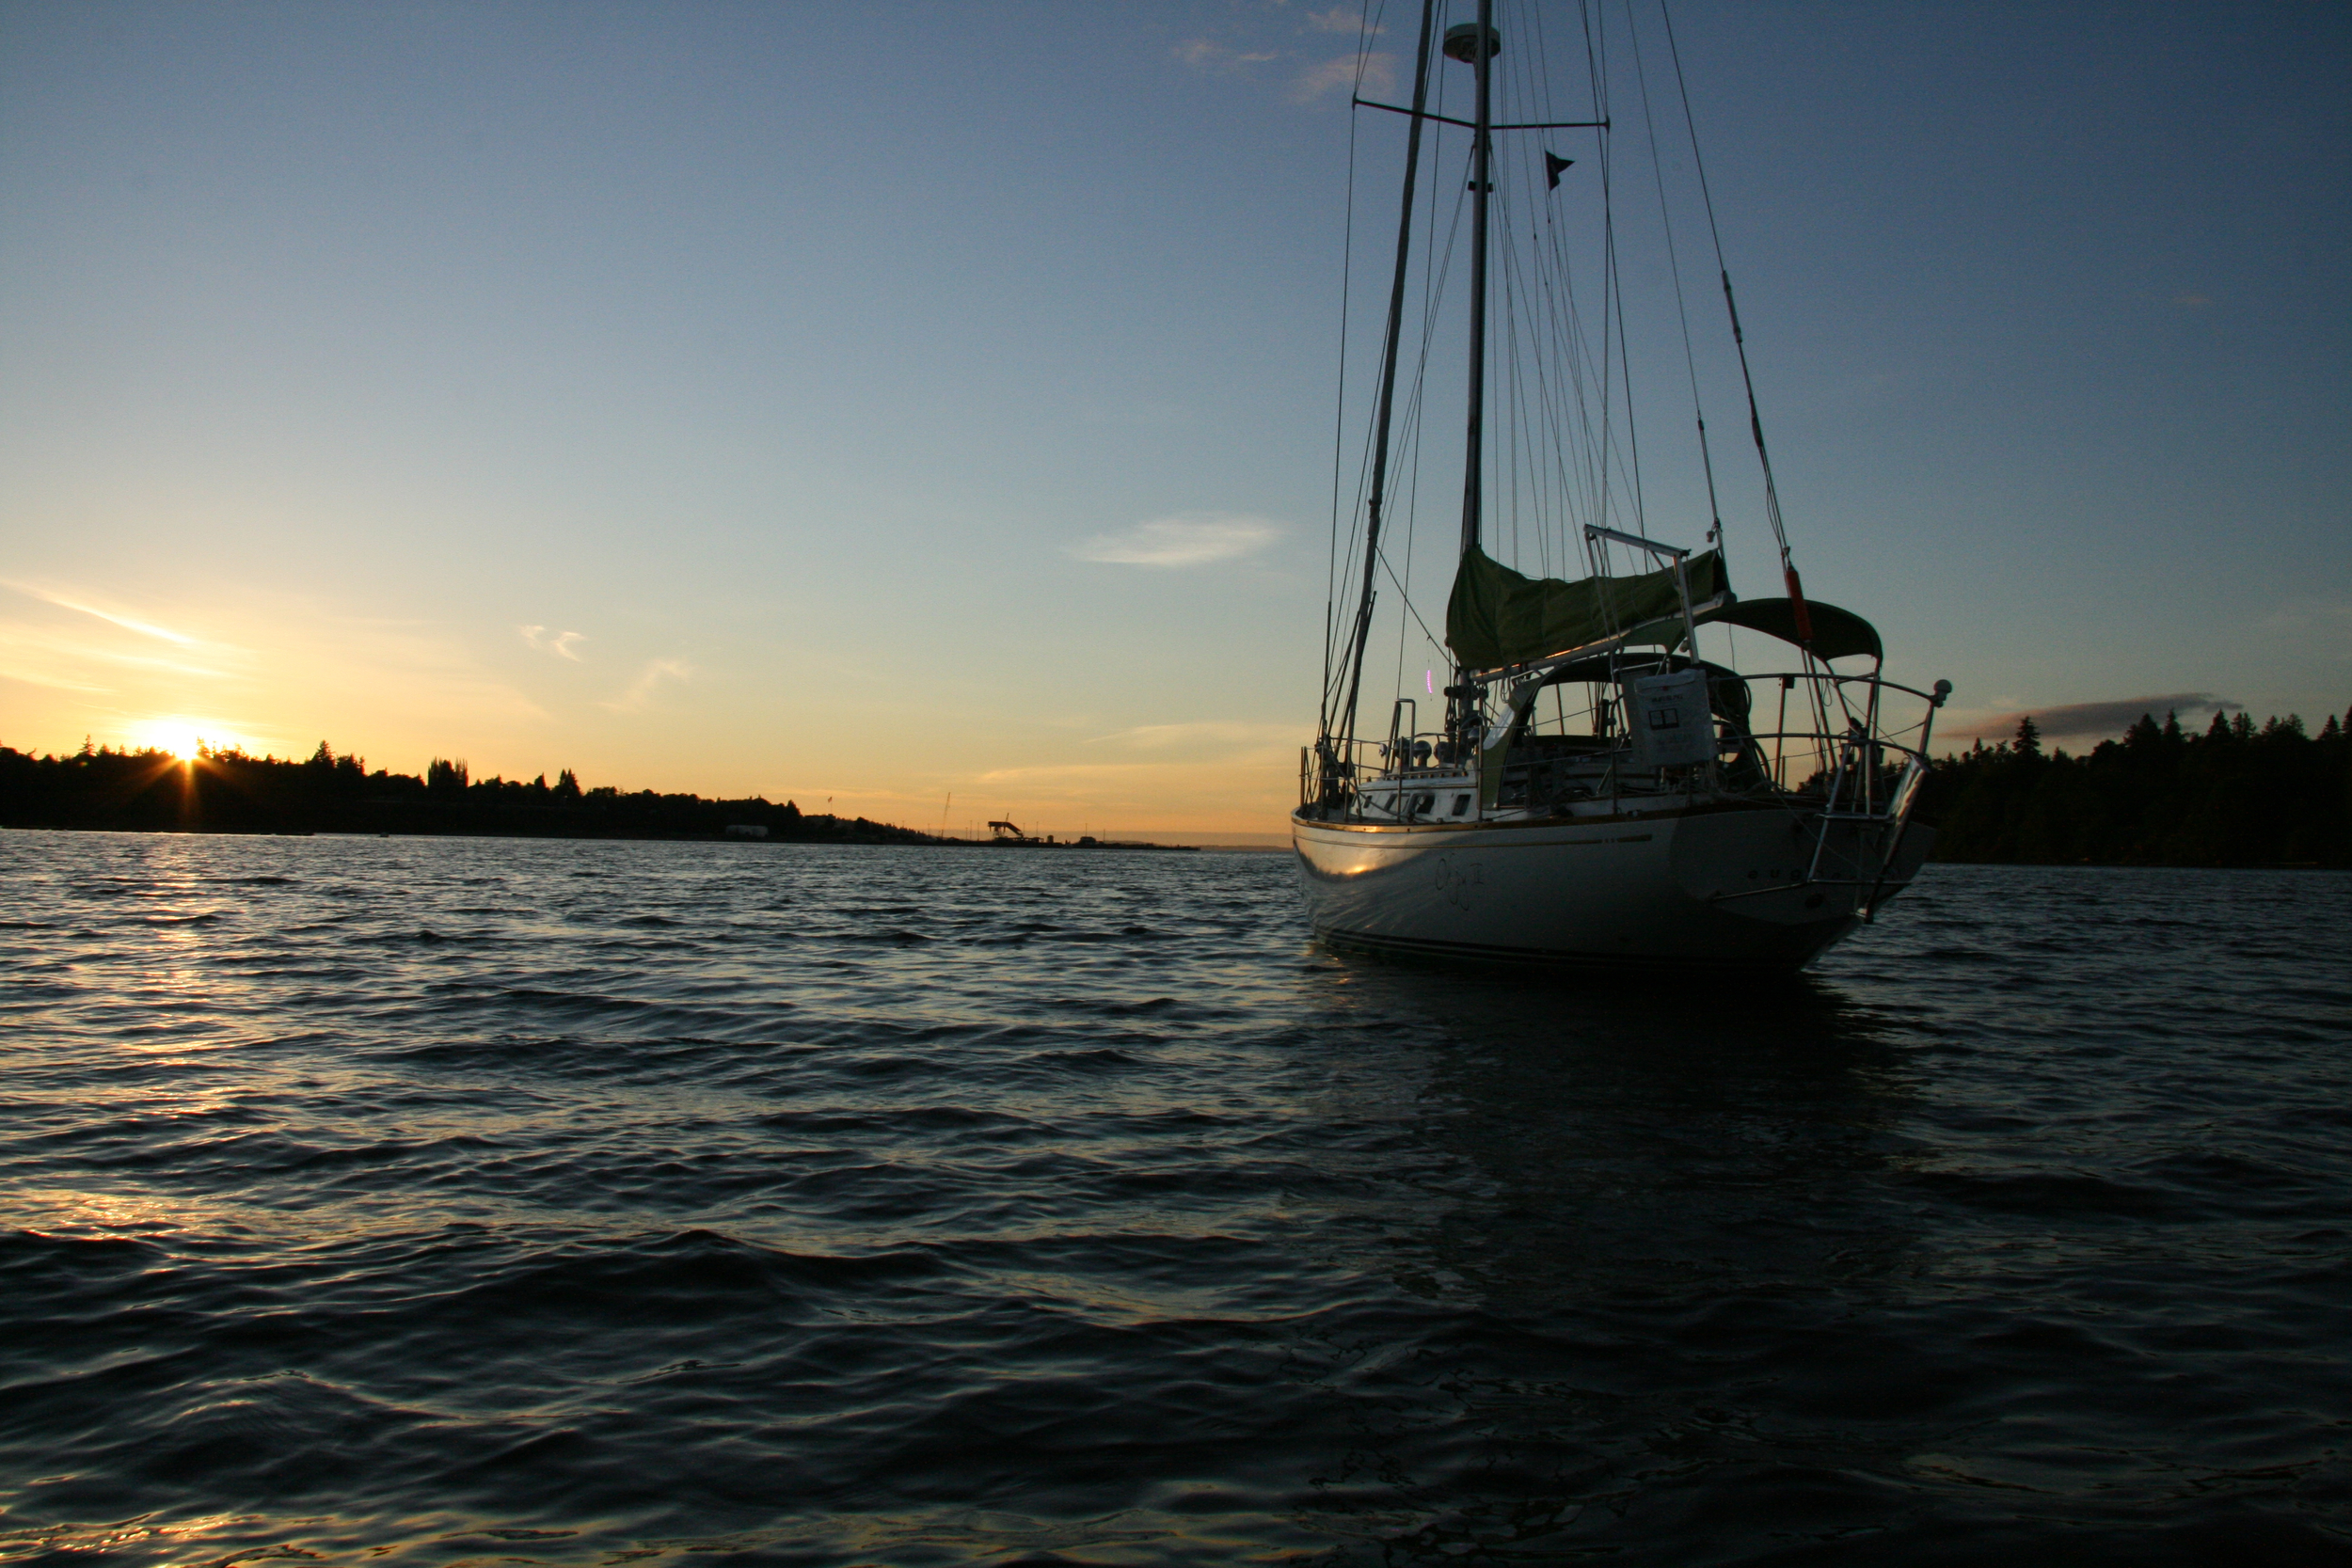 sunset at anchor